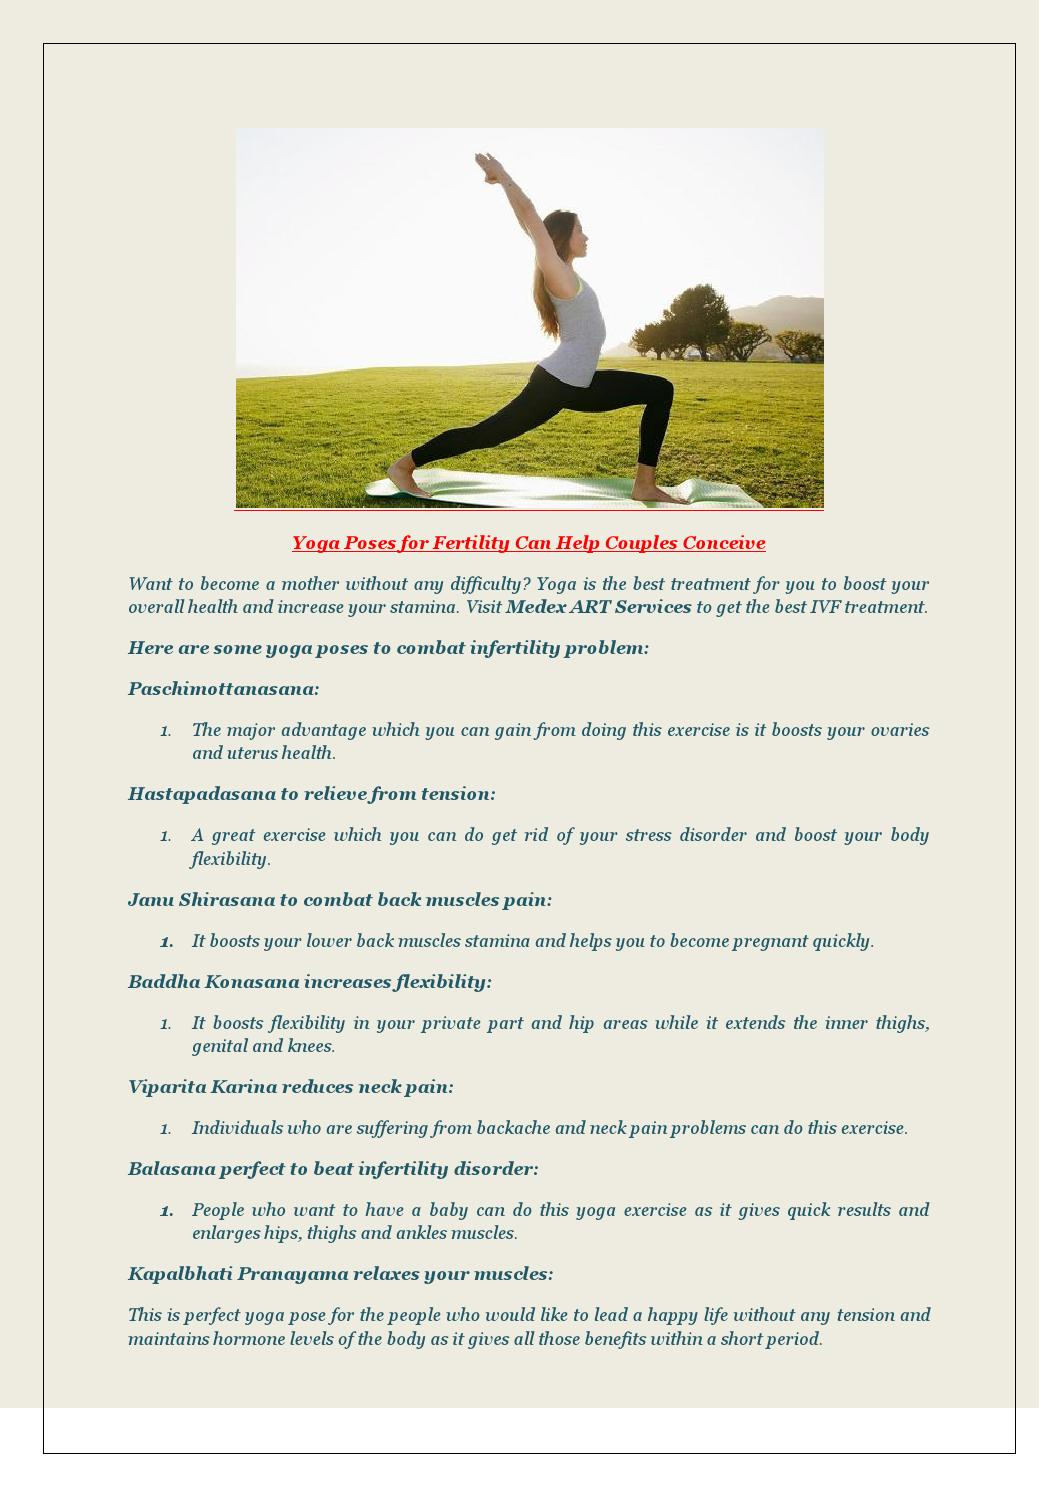 Yoga Poses For Fertility Can Help Couples Concieve By Ivf Centre Delhi Issuu